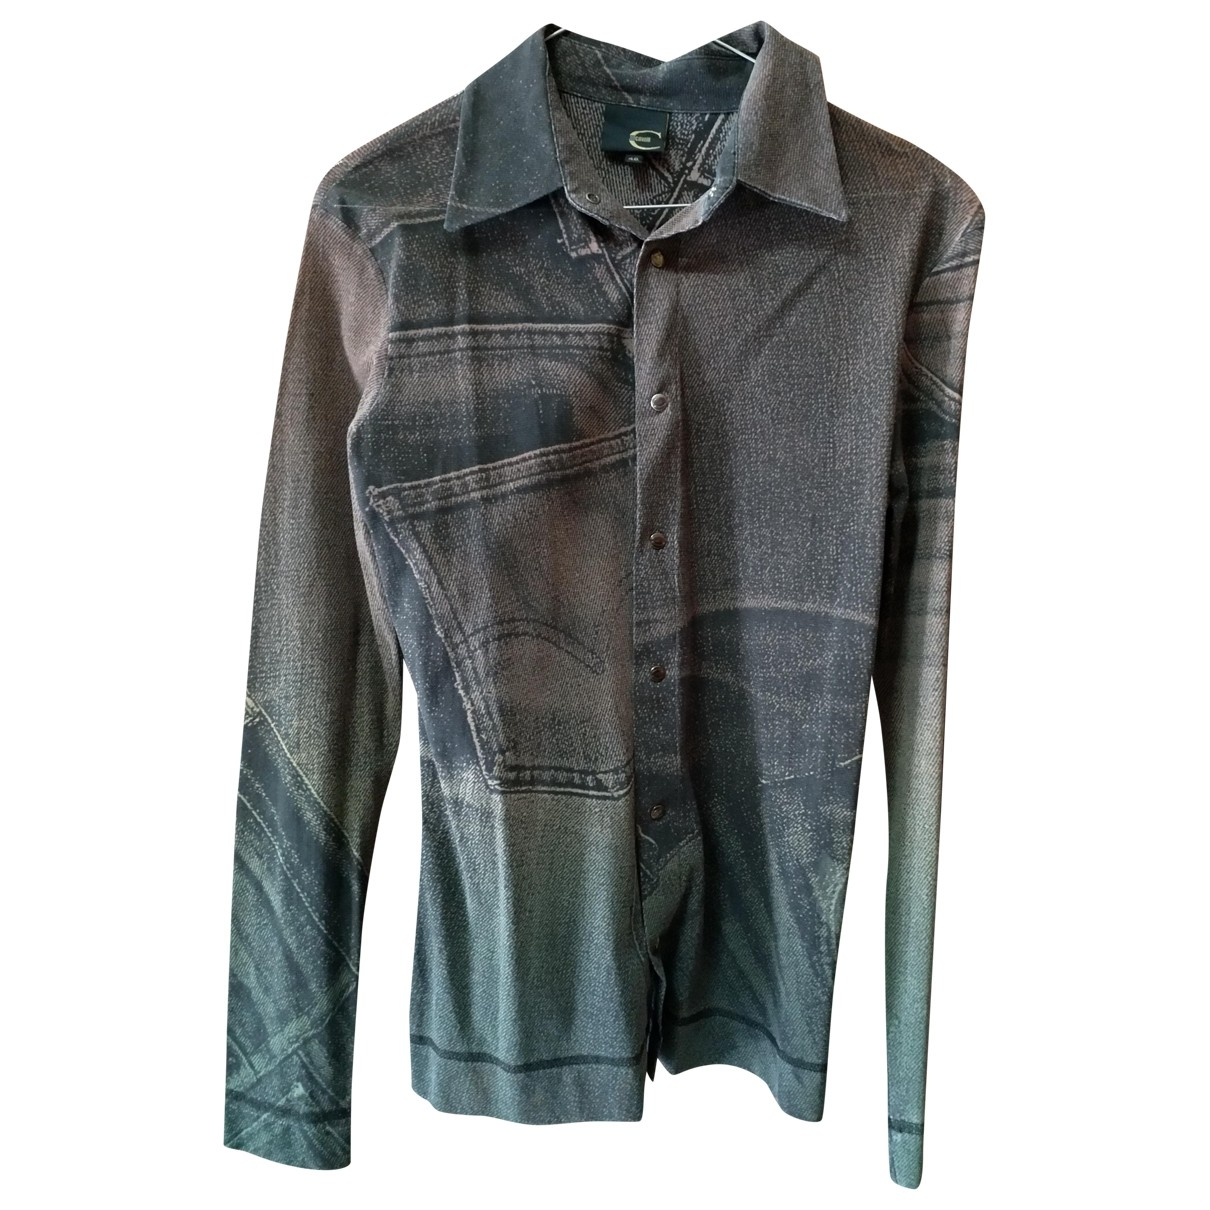 Just Cavalli \N Multicolour Shirts for Men M International